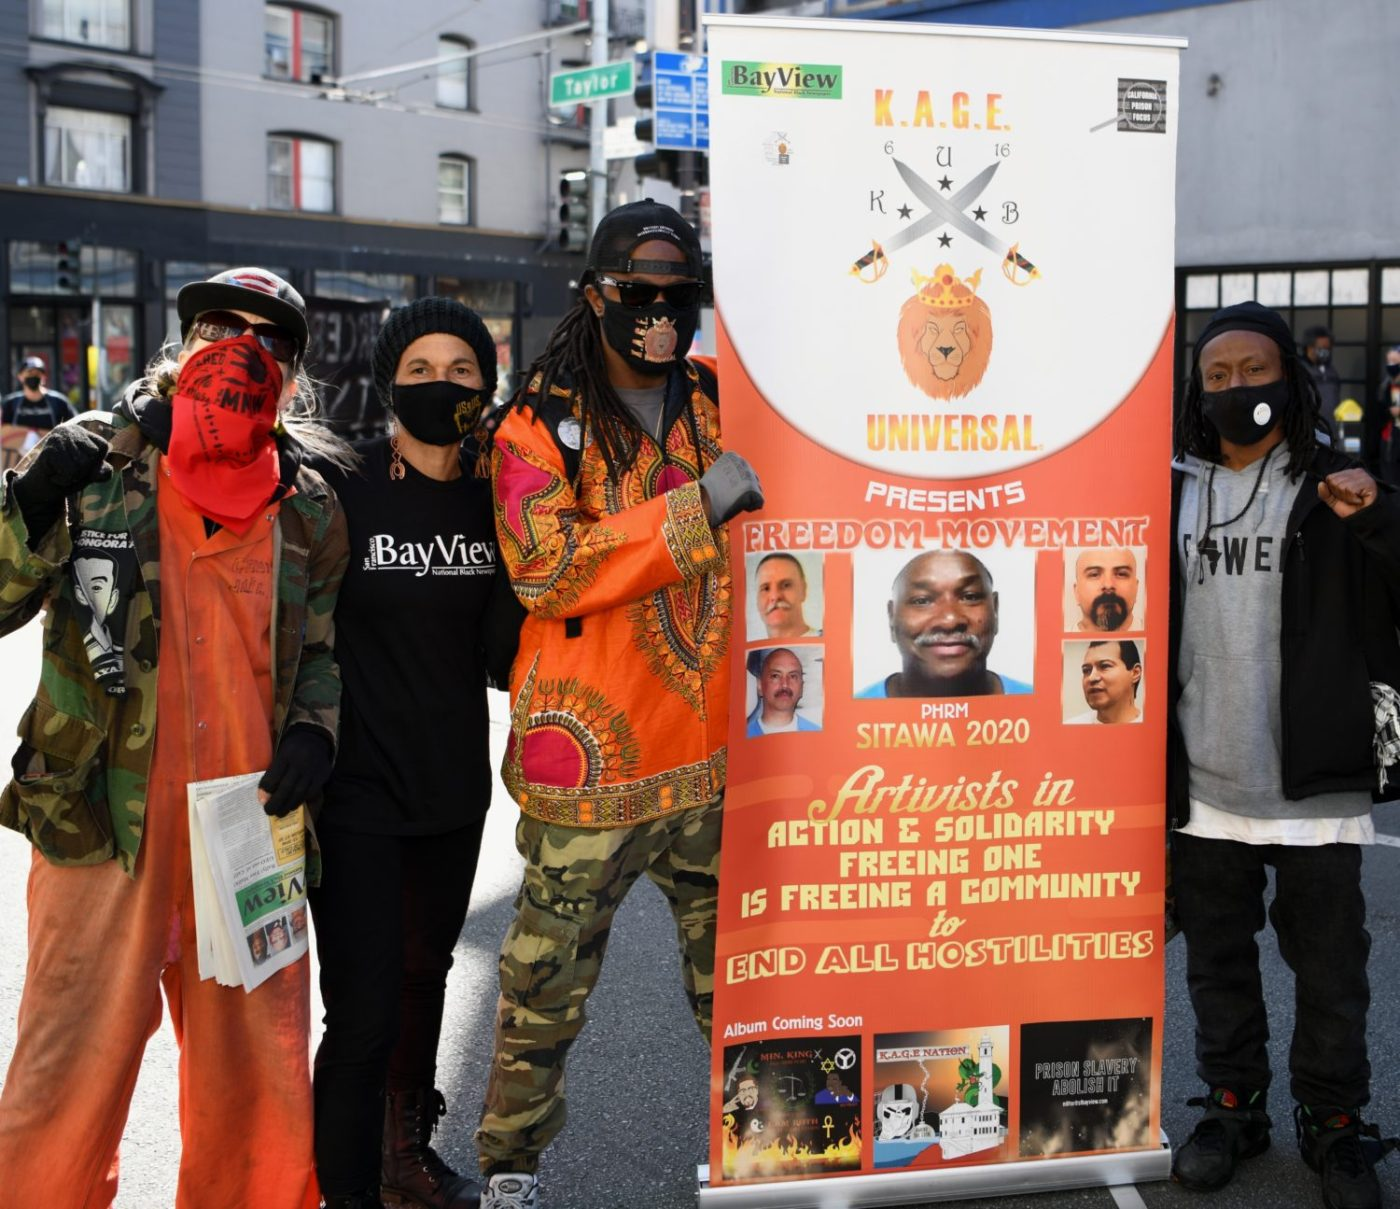 Free-Malik-rally-111-Taylor-Tiny-Nube-Min.-King-Jabari-Scott-030721-by-Johnnie-Burrell-1400x1209, Journalist detained at GEO Group halfway house faces retaliation for exposing COVID-19 outbreak, Local News & Views